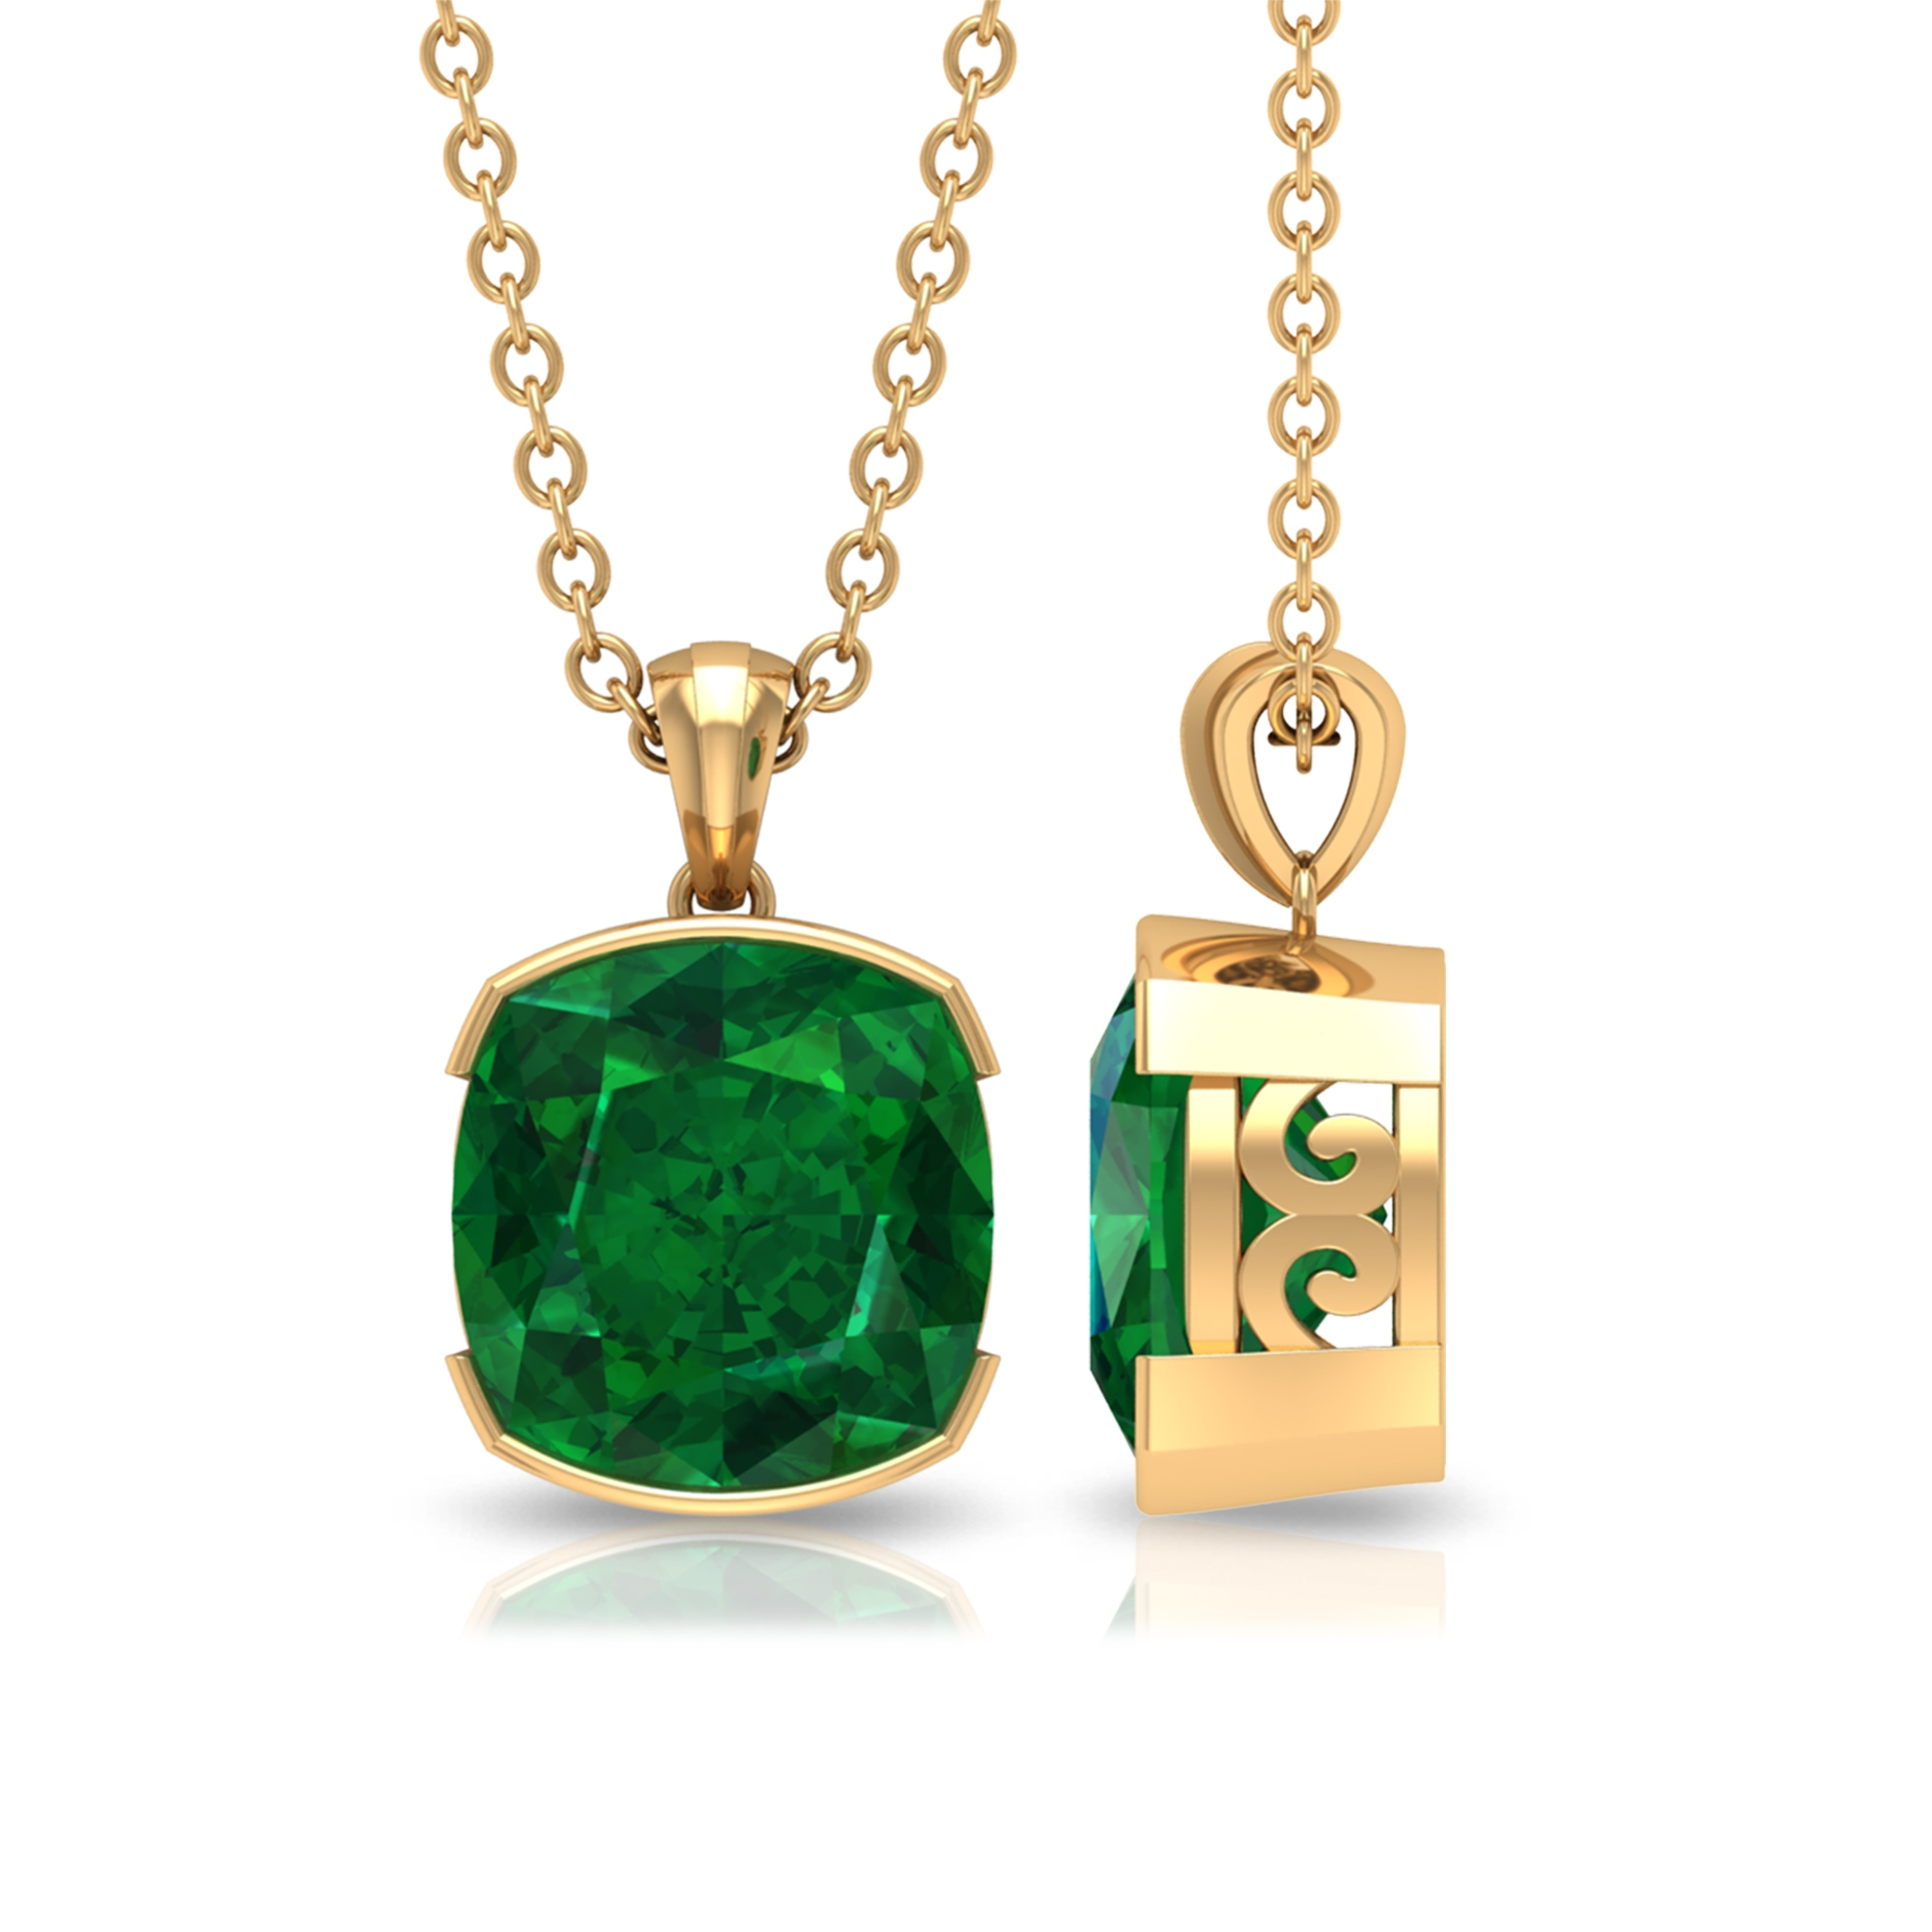 8 MM Cushion Cut Emerald Solitaire Pendant in Half Bezel Setting with Standard Bail